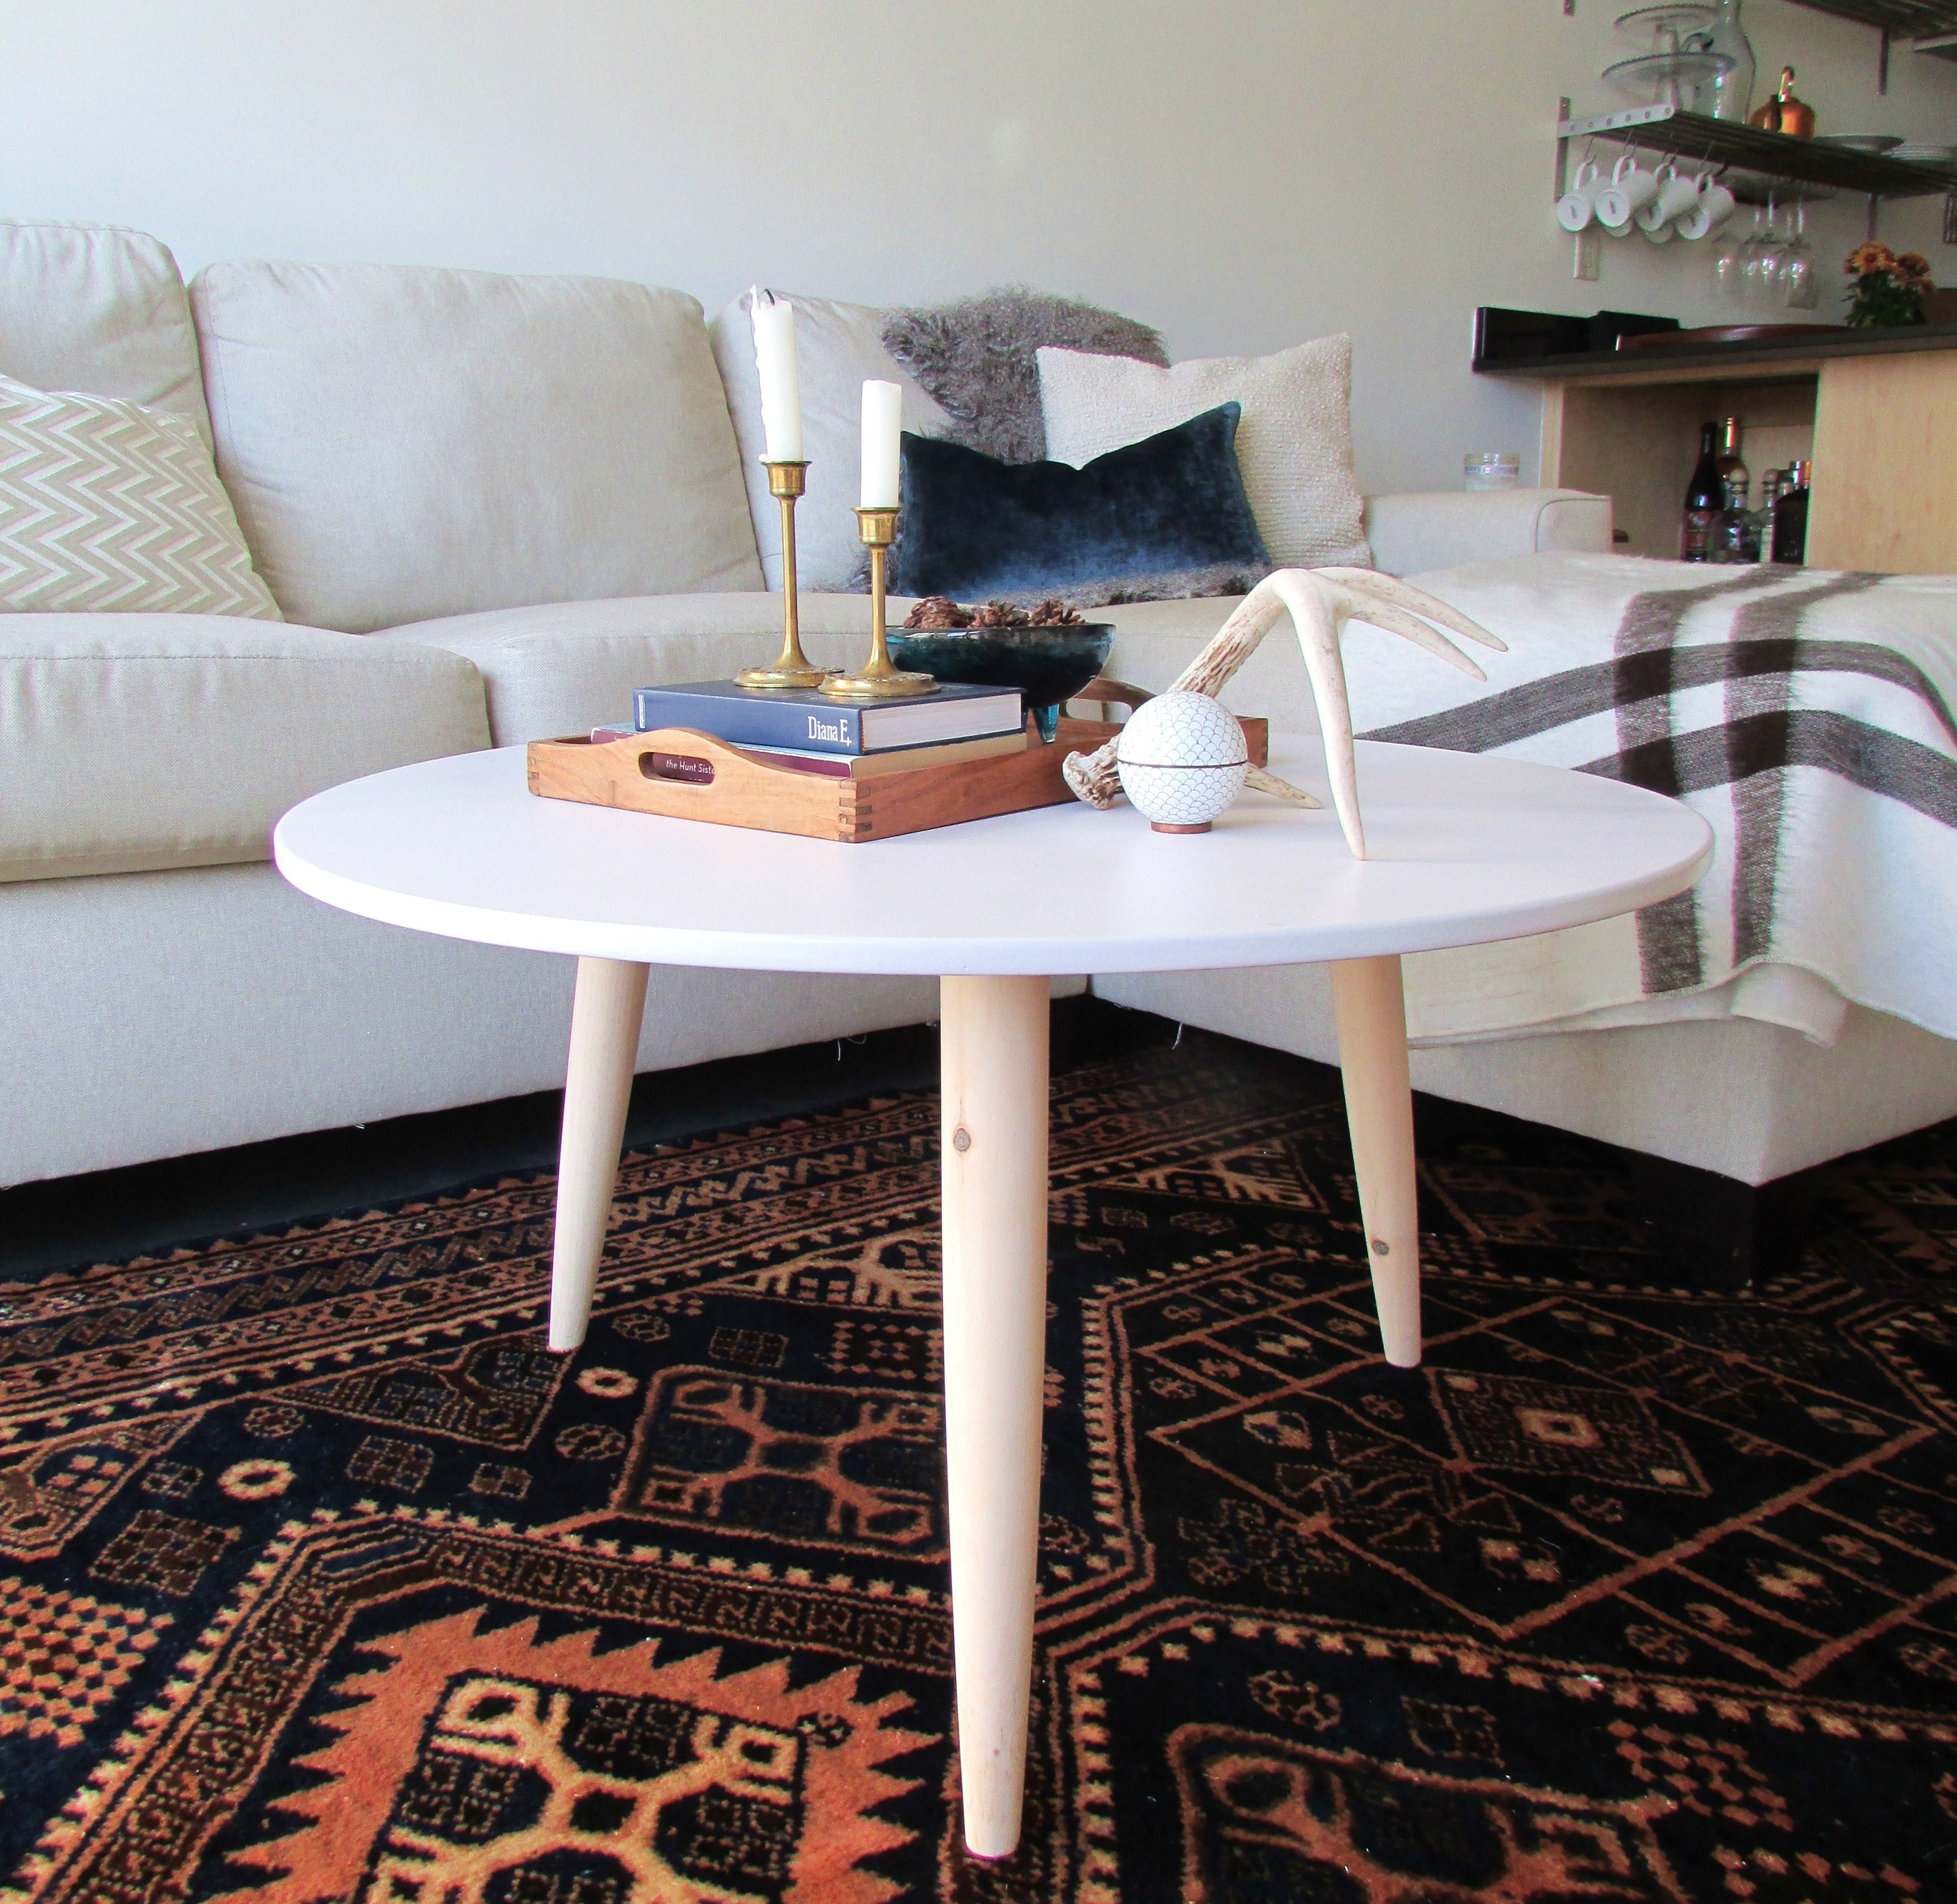 DIY Danish Modern Coffee Table Francois et Moi